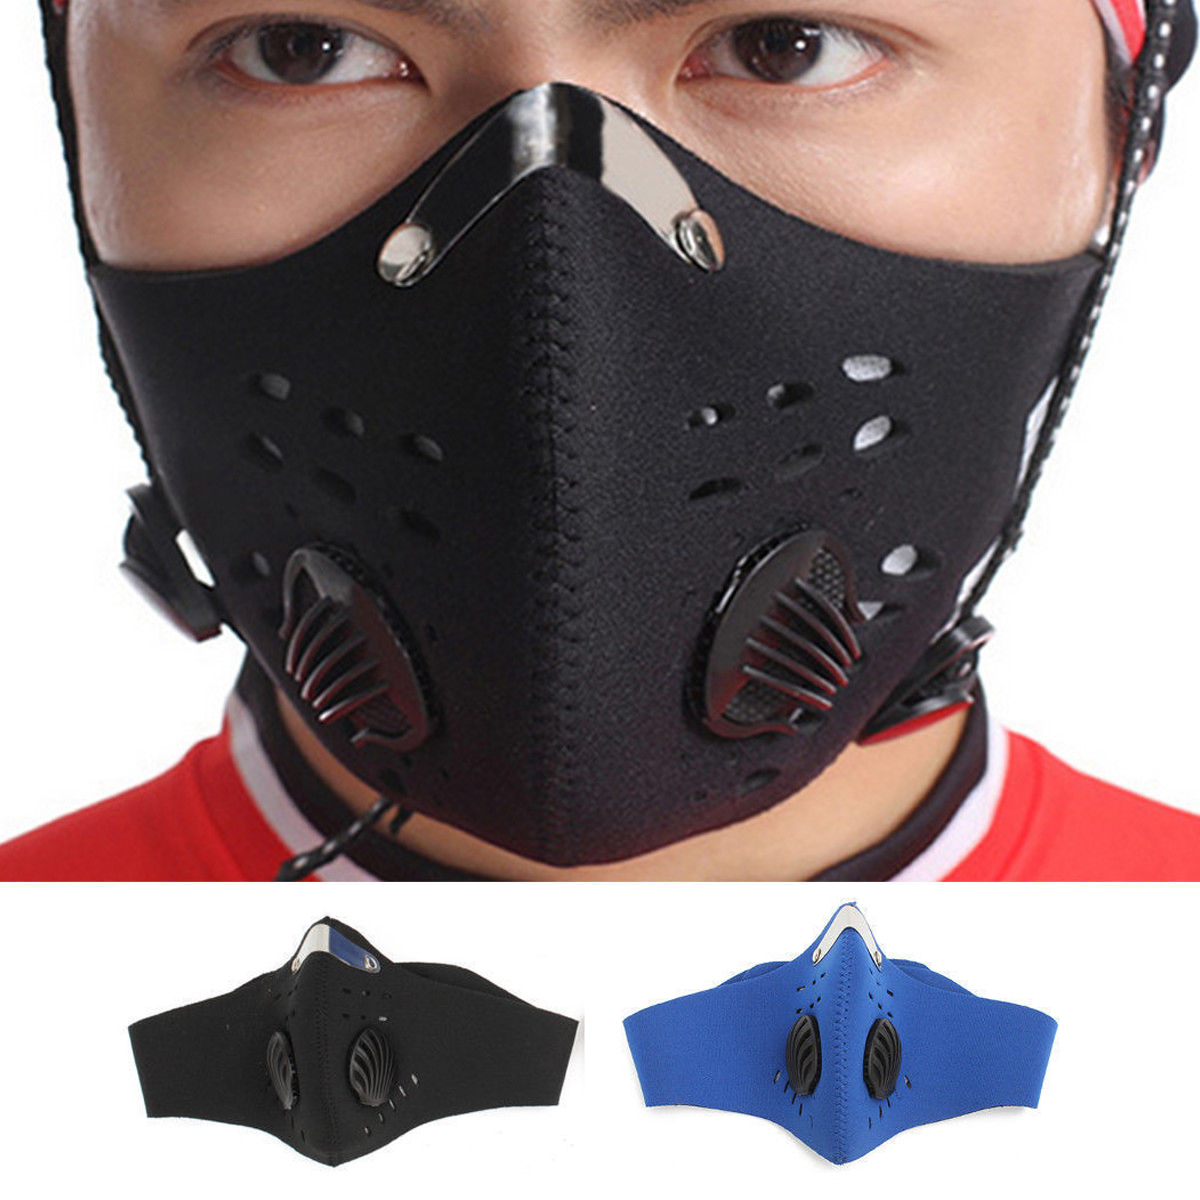 Cover Reusable About Mask Face Half Anti-dust Details Cyclist Carbon Activated Mesh Filter Au